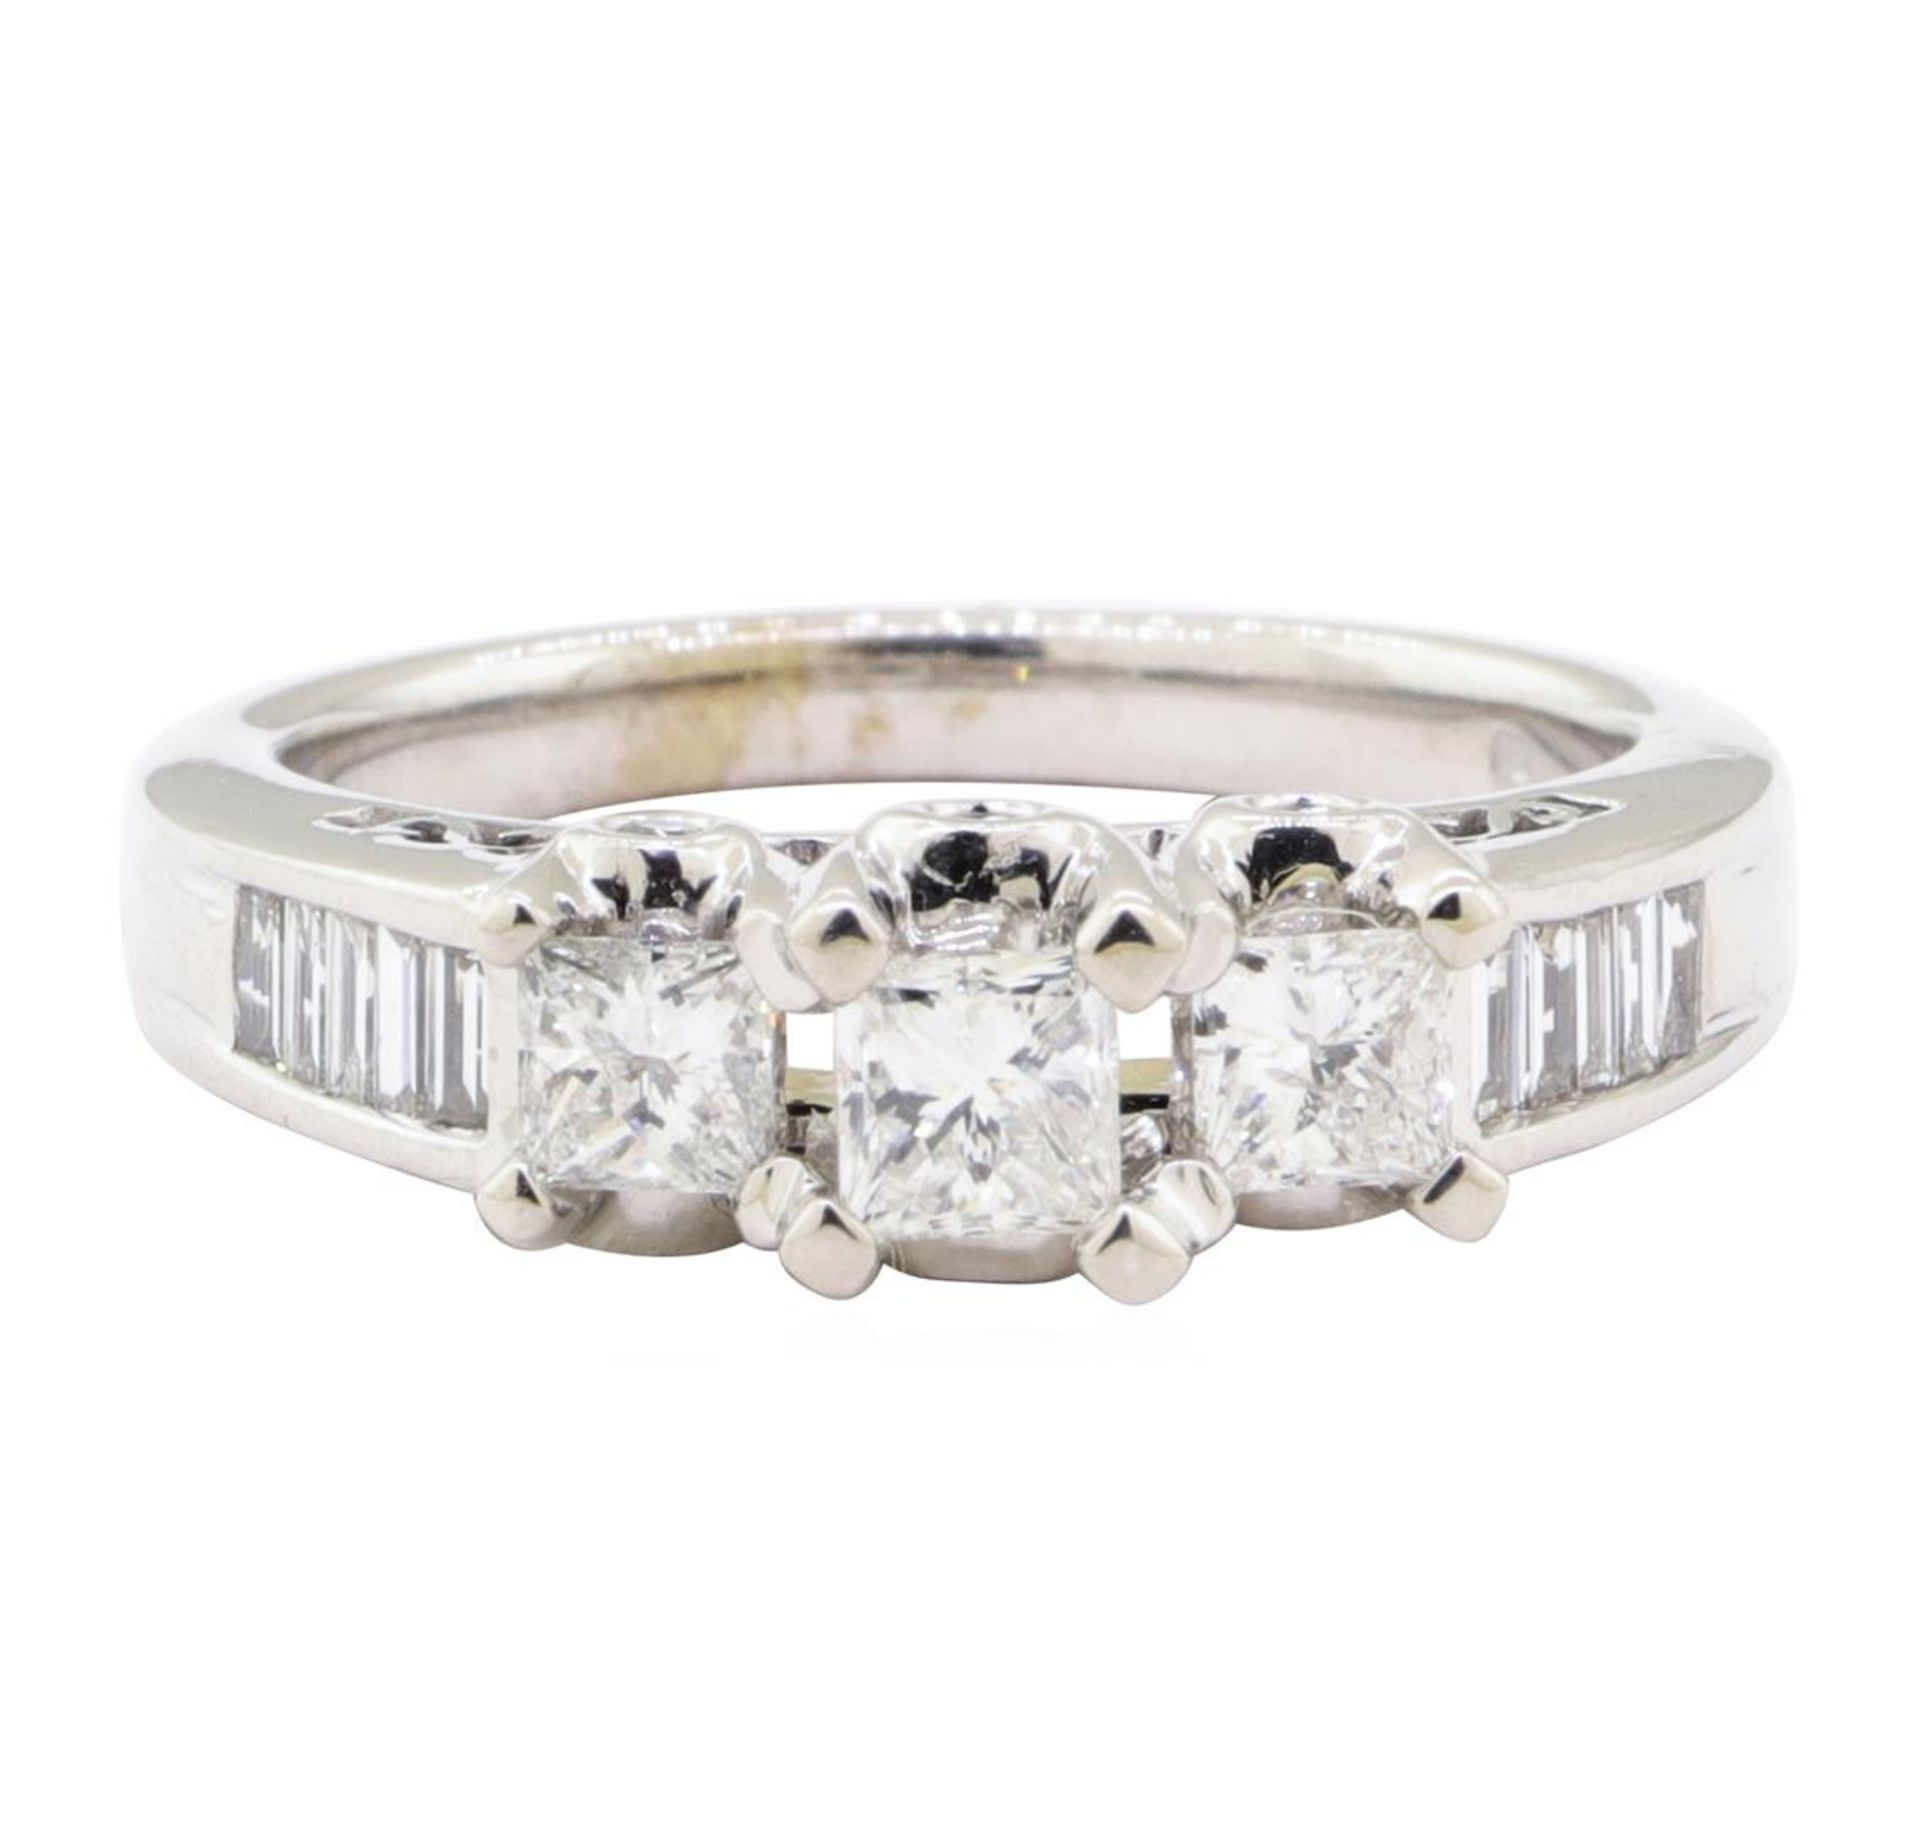 1.00 ctw Diamond Ring - 14KT White Gold - Image 2 of 5